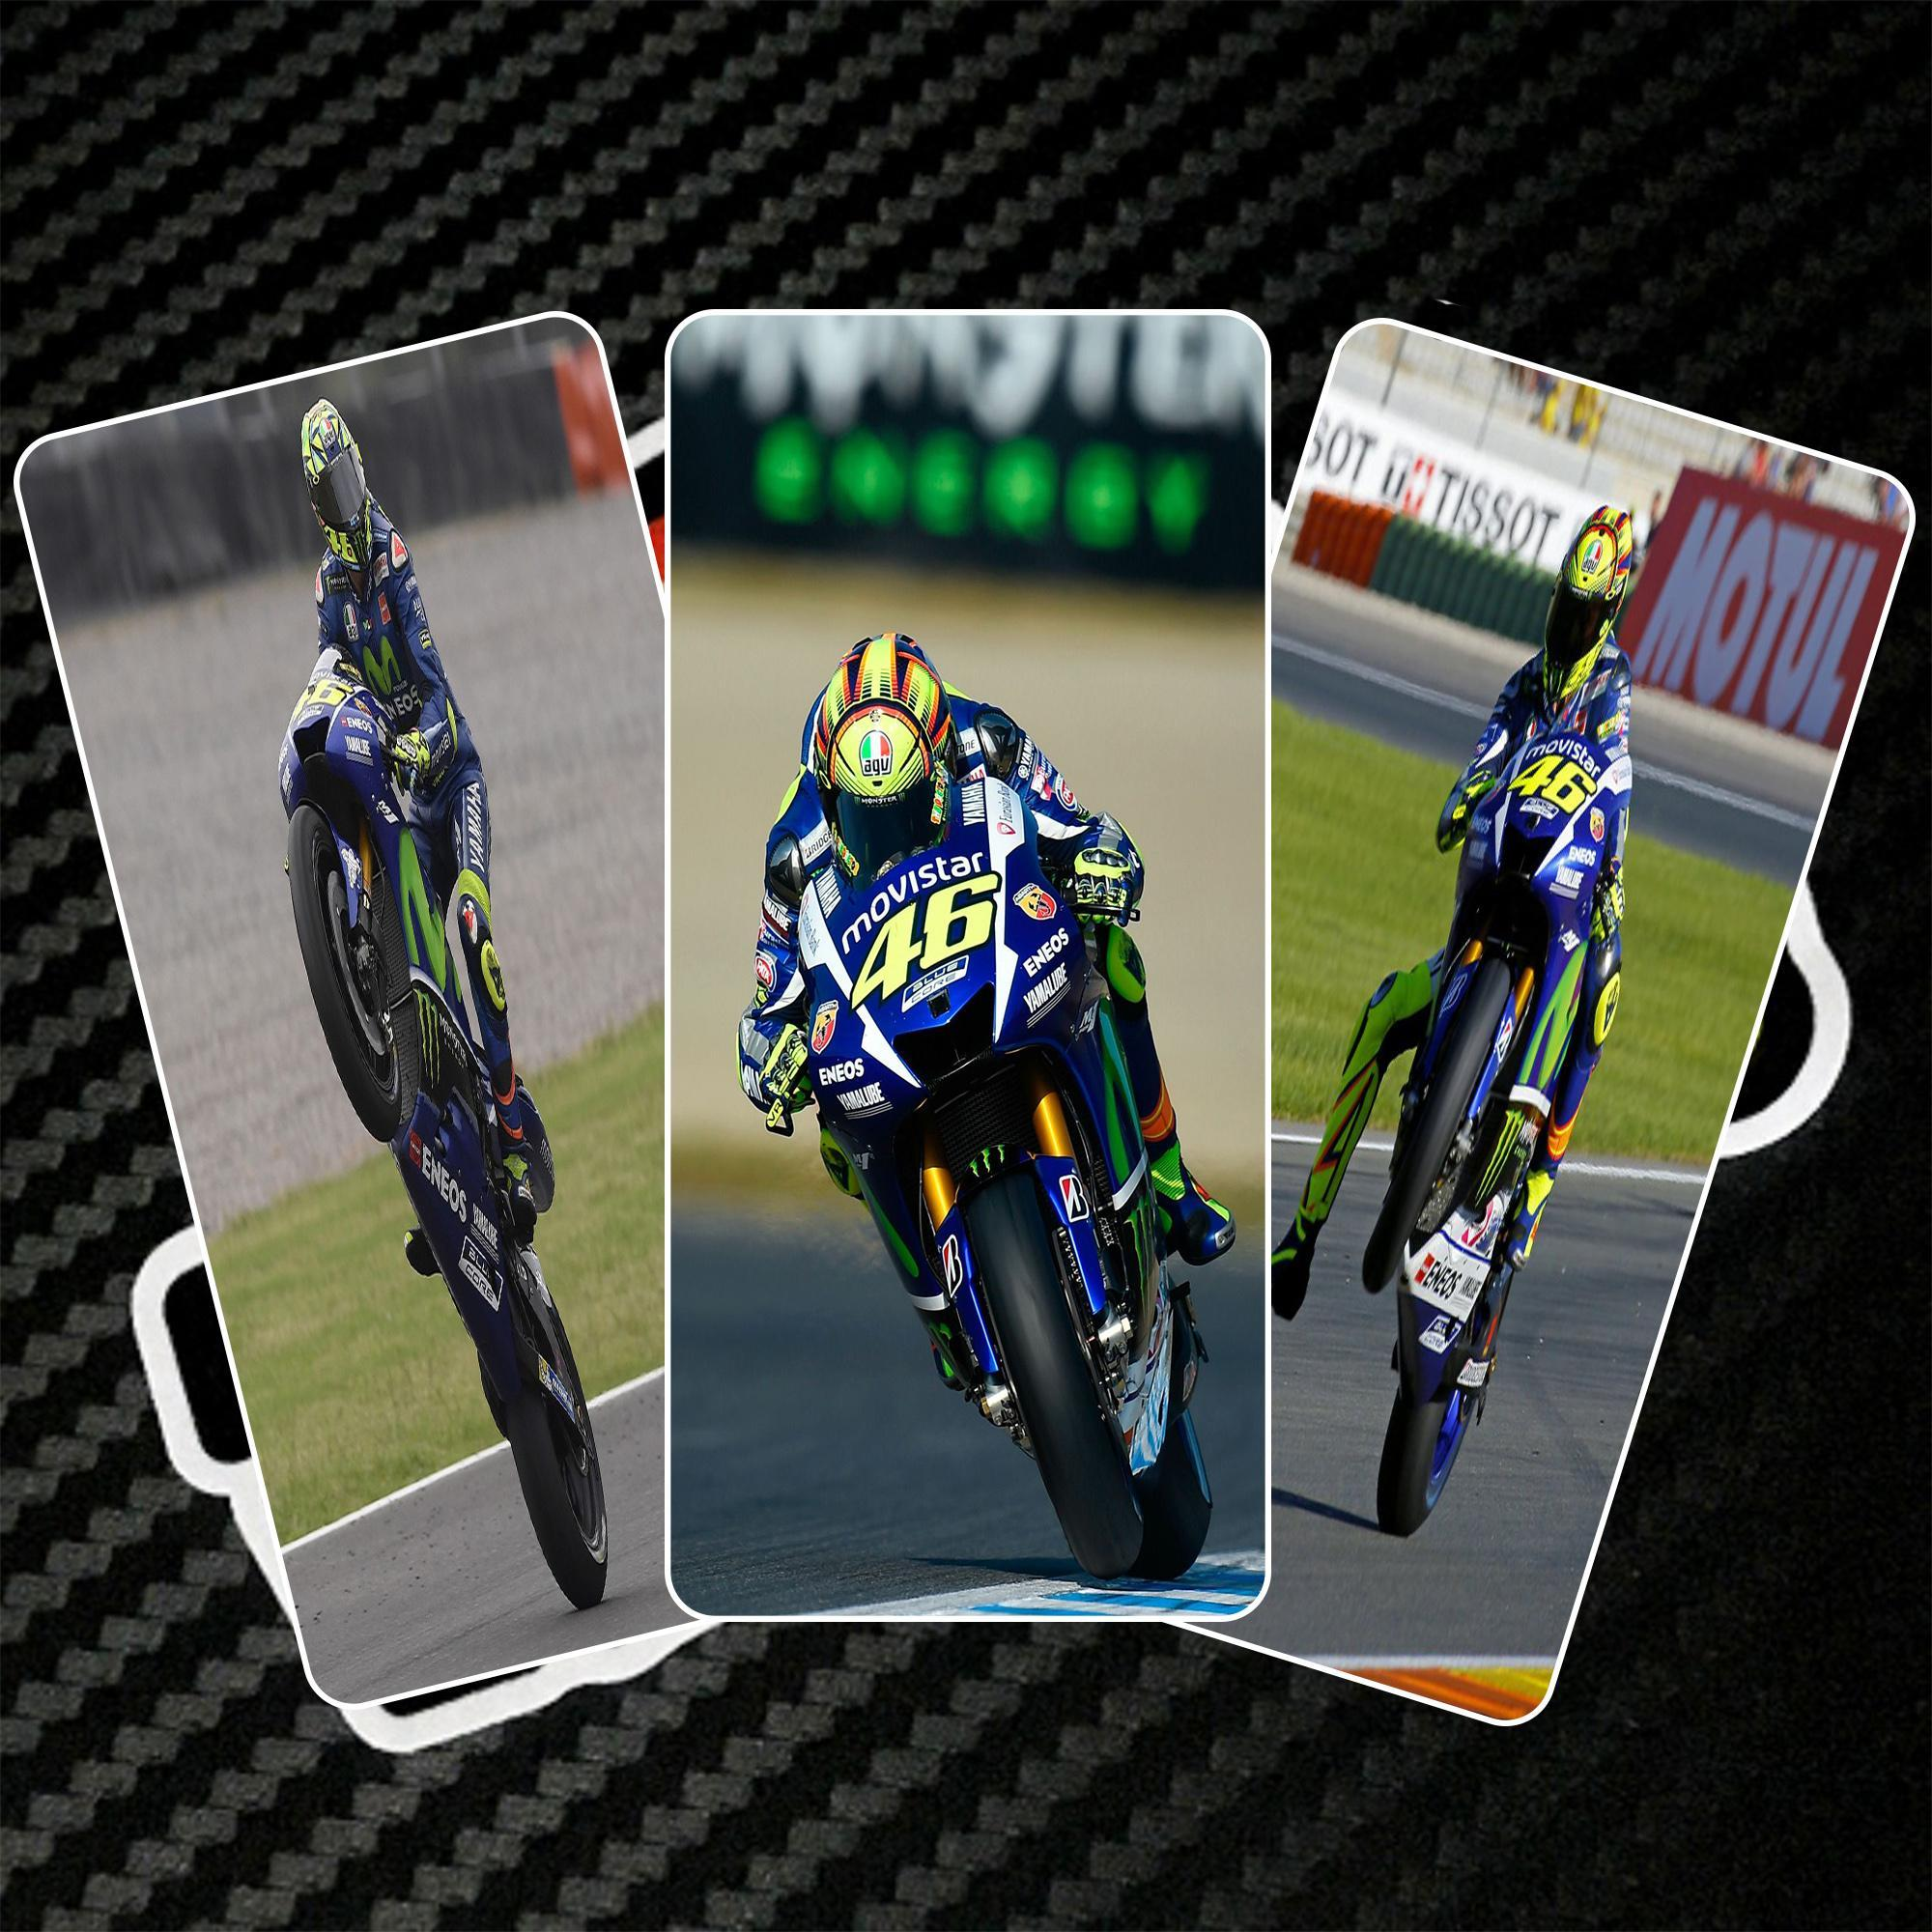 Valentino Rossi Wallpapers 4K 2019 for Android